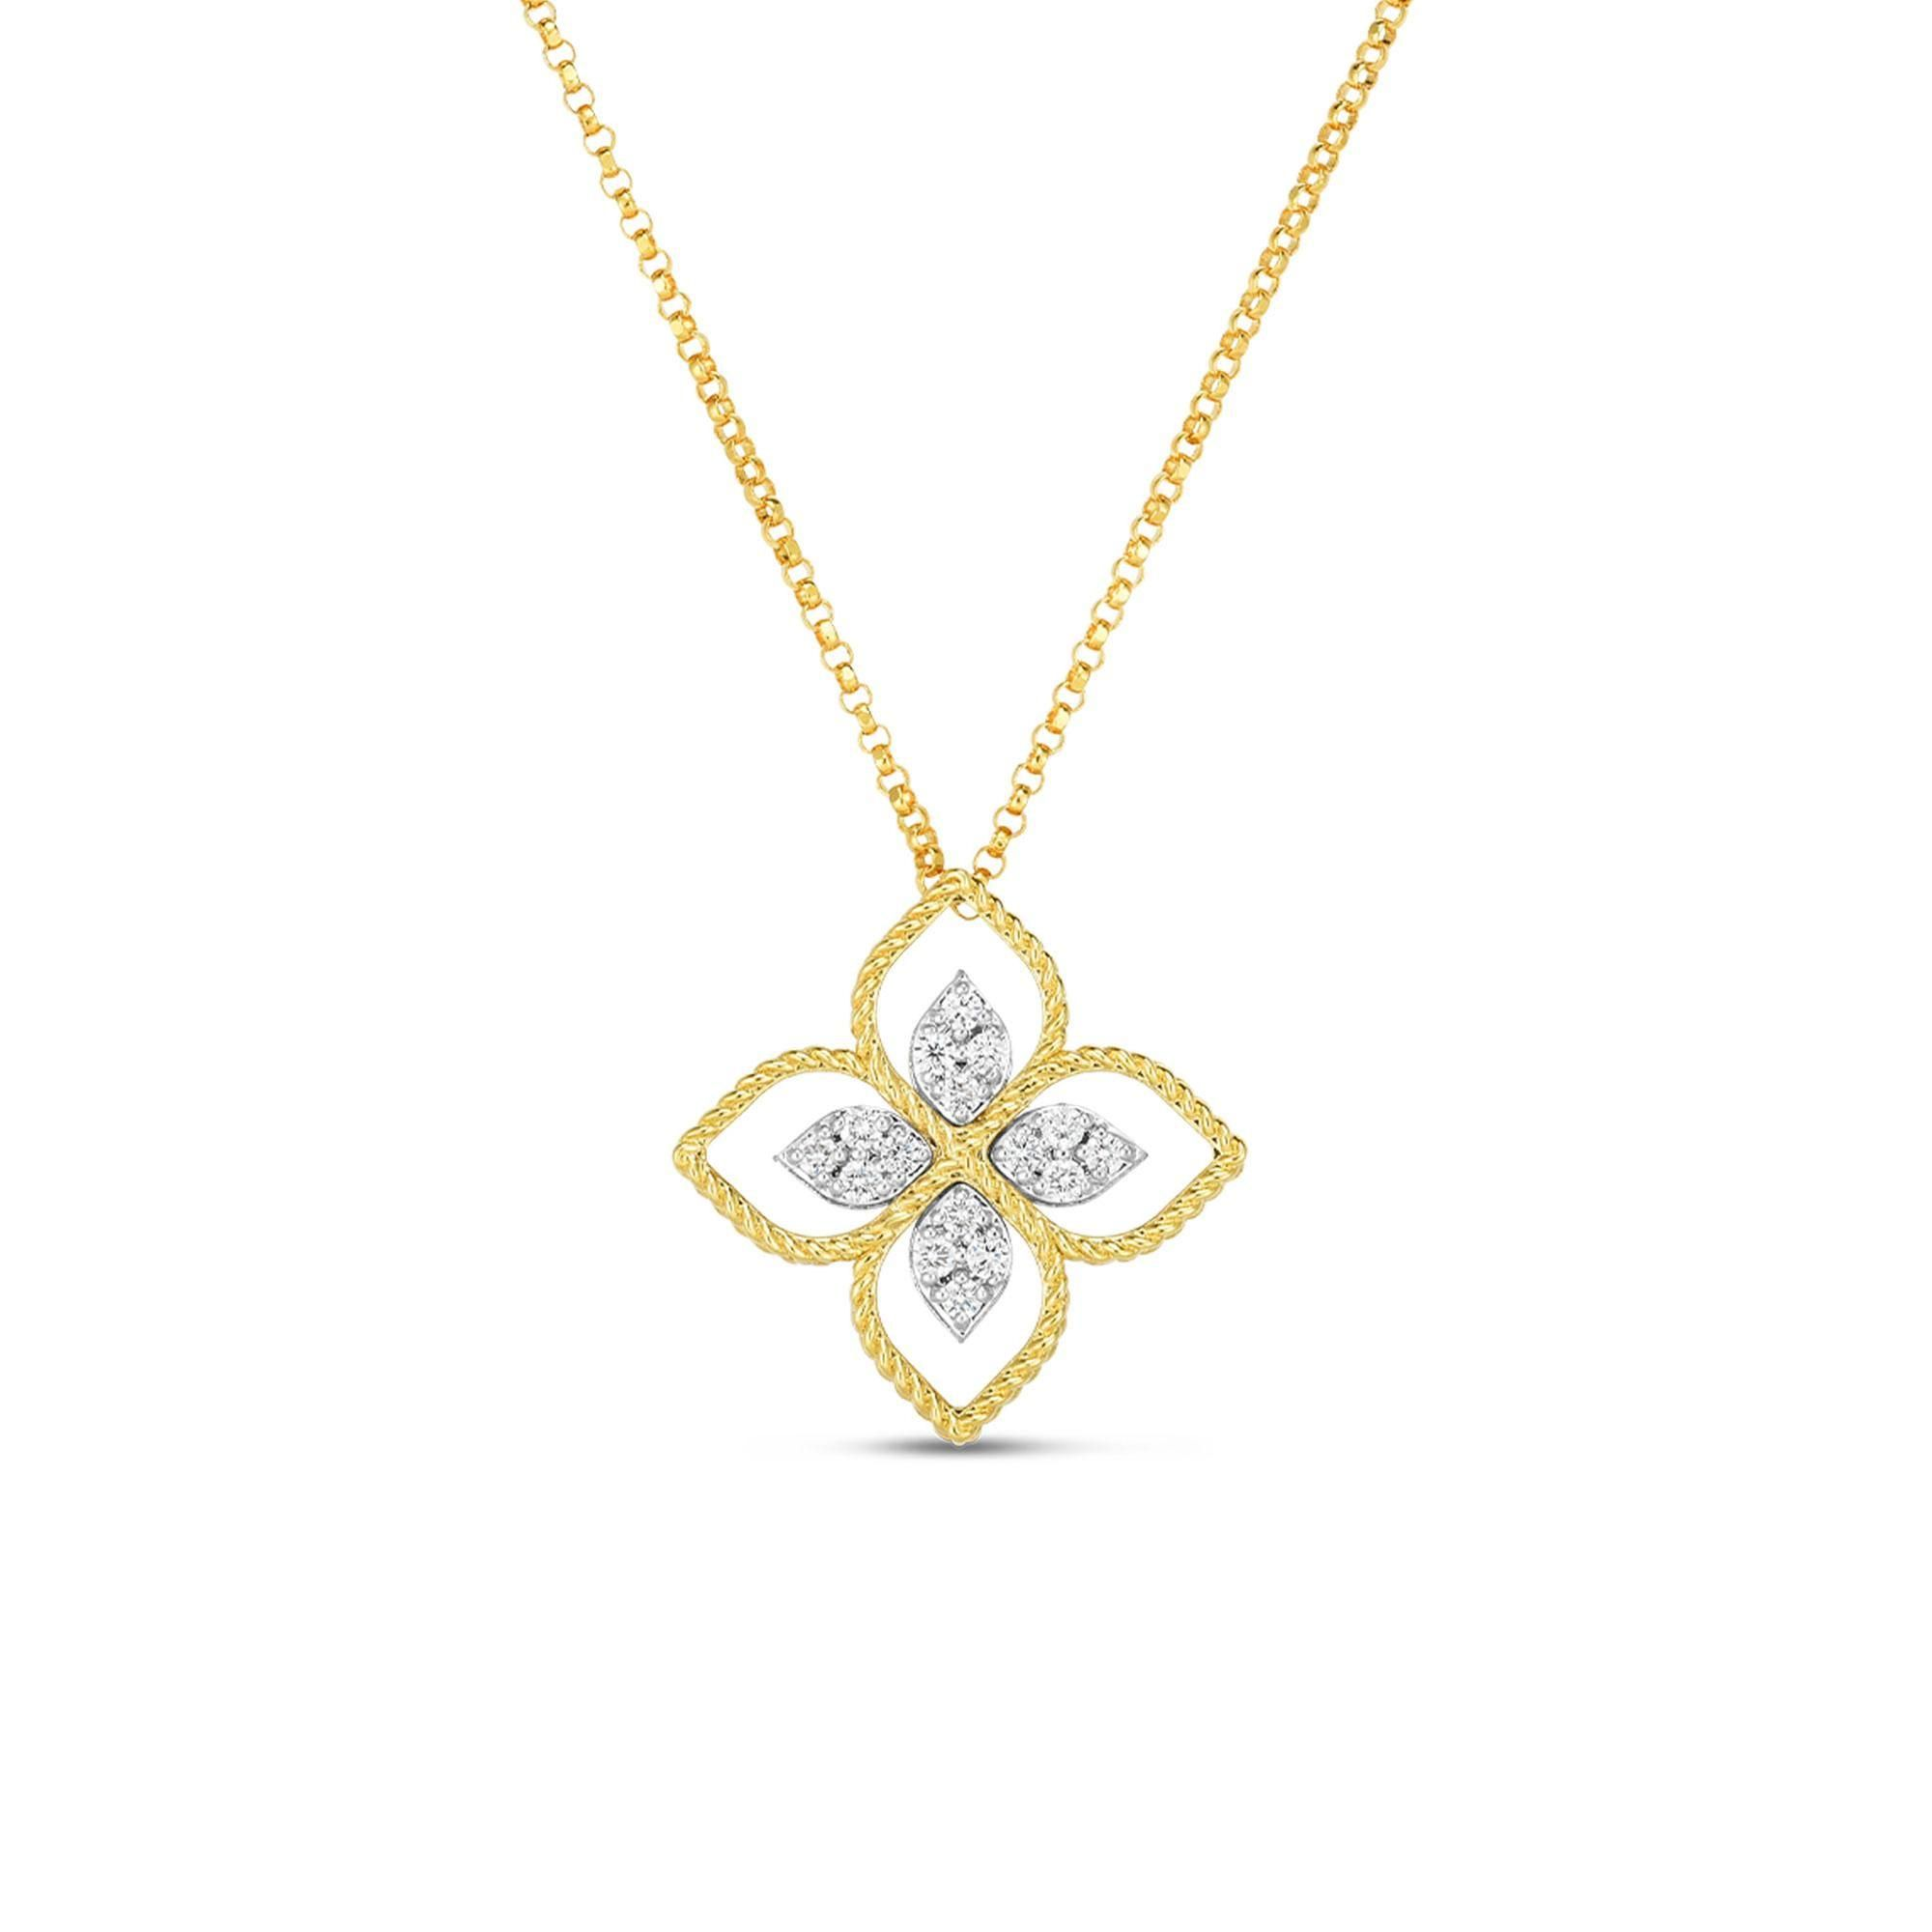 Roberto Coin Princess Flower Large Yellow Gold Diamond Pendant Necklace 1 6ctw Carats Jewelry And Gifts